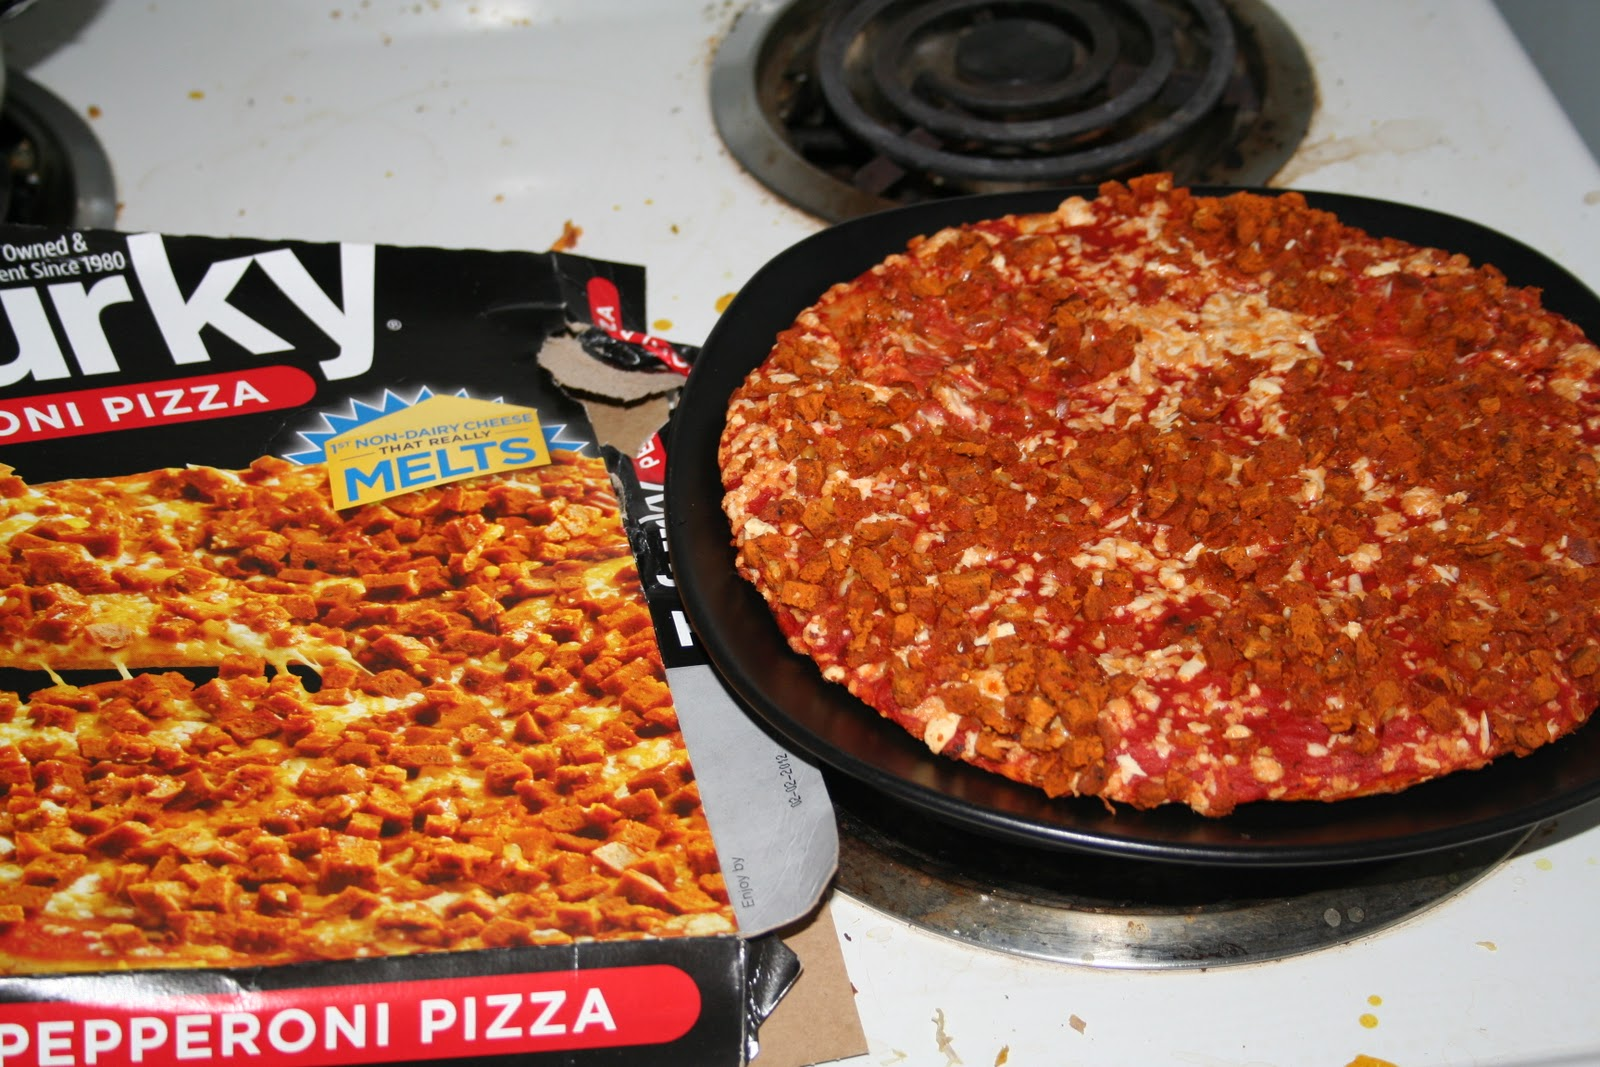 How To Make A Frozen Pizza The Redundant Vegan Happy Vegan Pizza Day A Slc Guide To Vegan Pizza